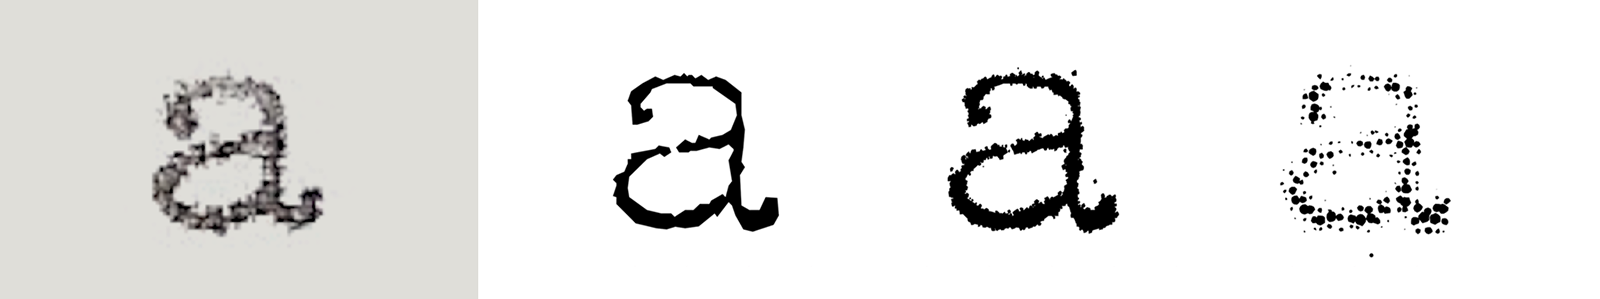 Sample of typewritten 'a' and the three grades of FF Trixie  (Erik van Blokland, 1991 and 2008).